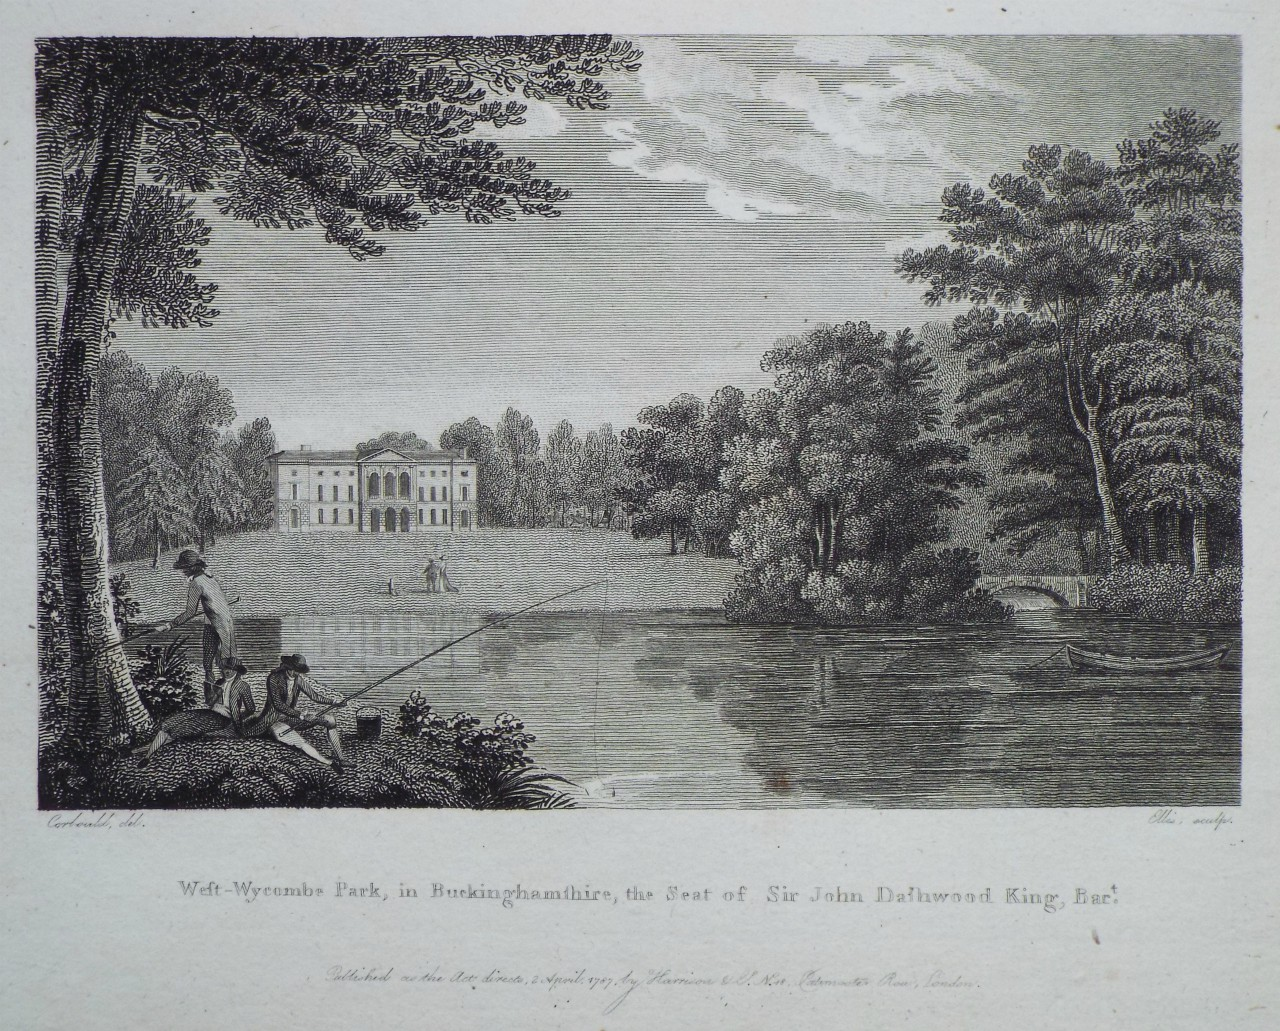 Print - West-Wycombe Park, in Buckinghamshire, the Seat of Sir John Dashwood King, Bart. -